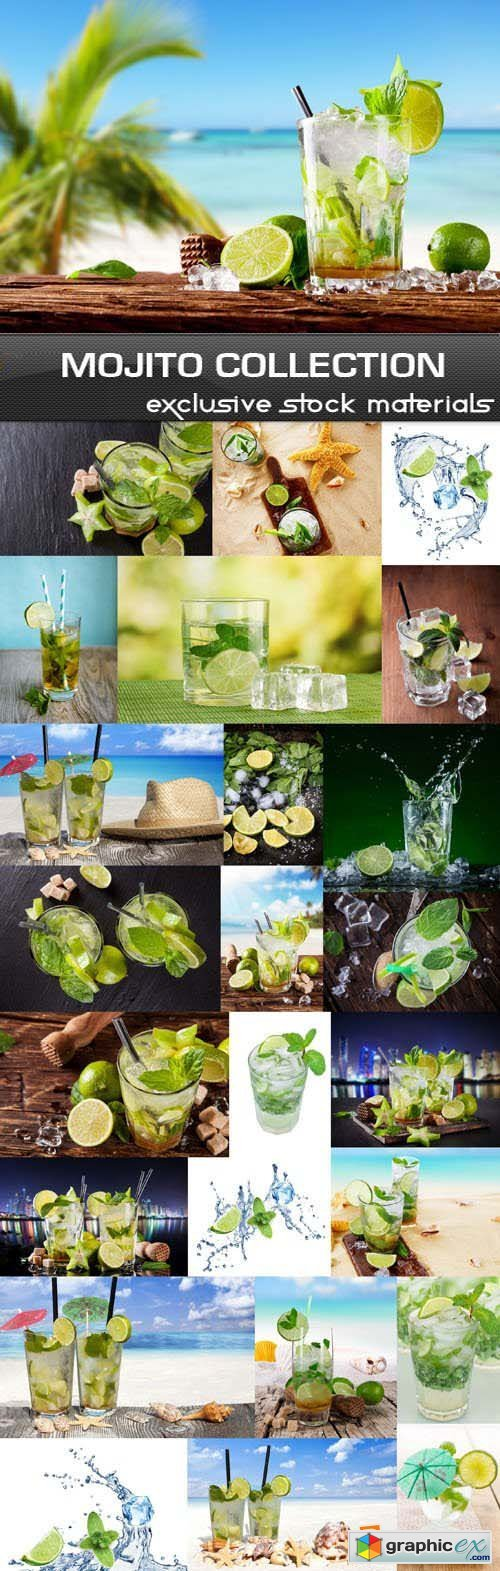 Mojito Collection, 25xUHQ JPEG